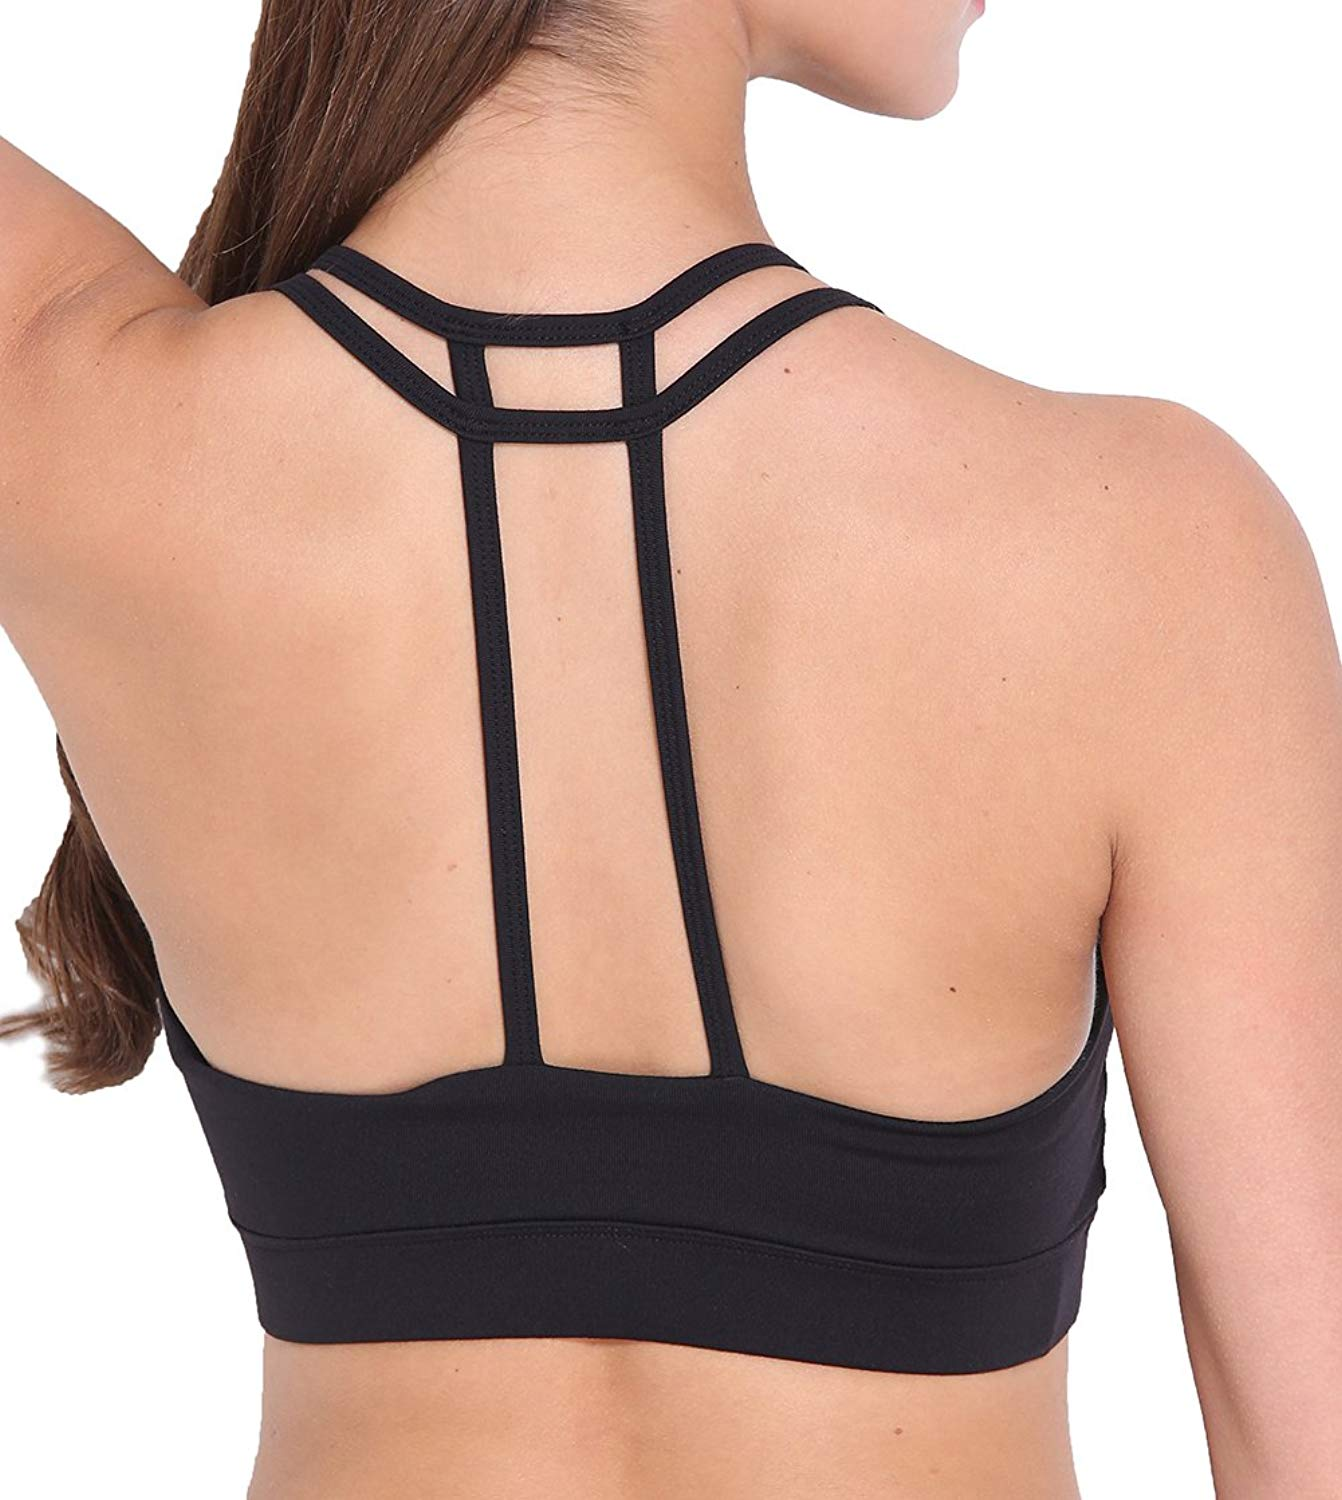 bc1c3e1e62 Get Quotations · Hioffer Sports Bra Criss Cross Back Strap Padded Mid  Impact Support Yoga Sports Bra Top